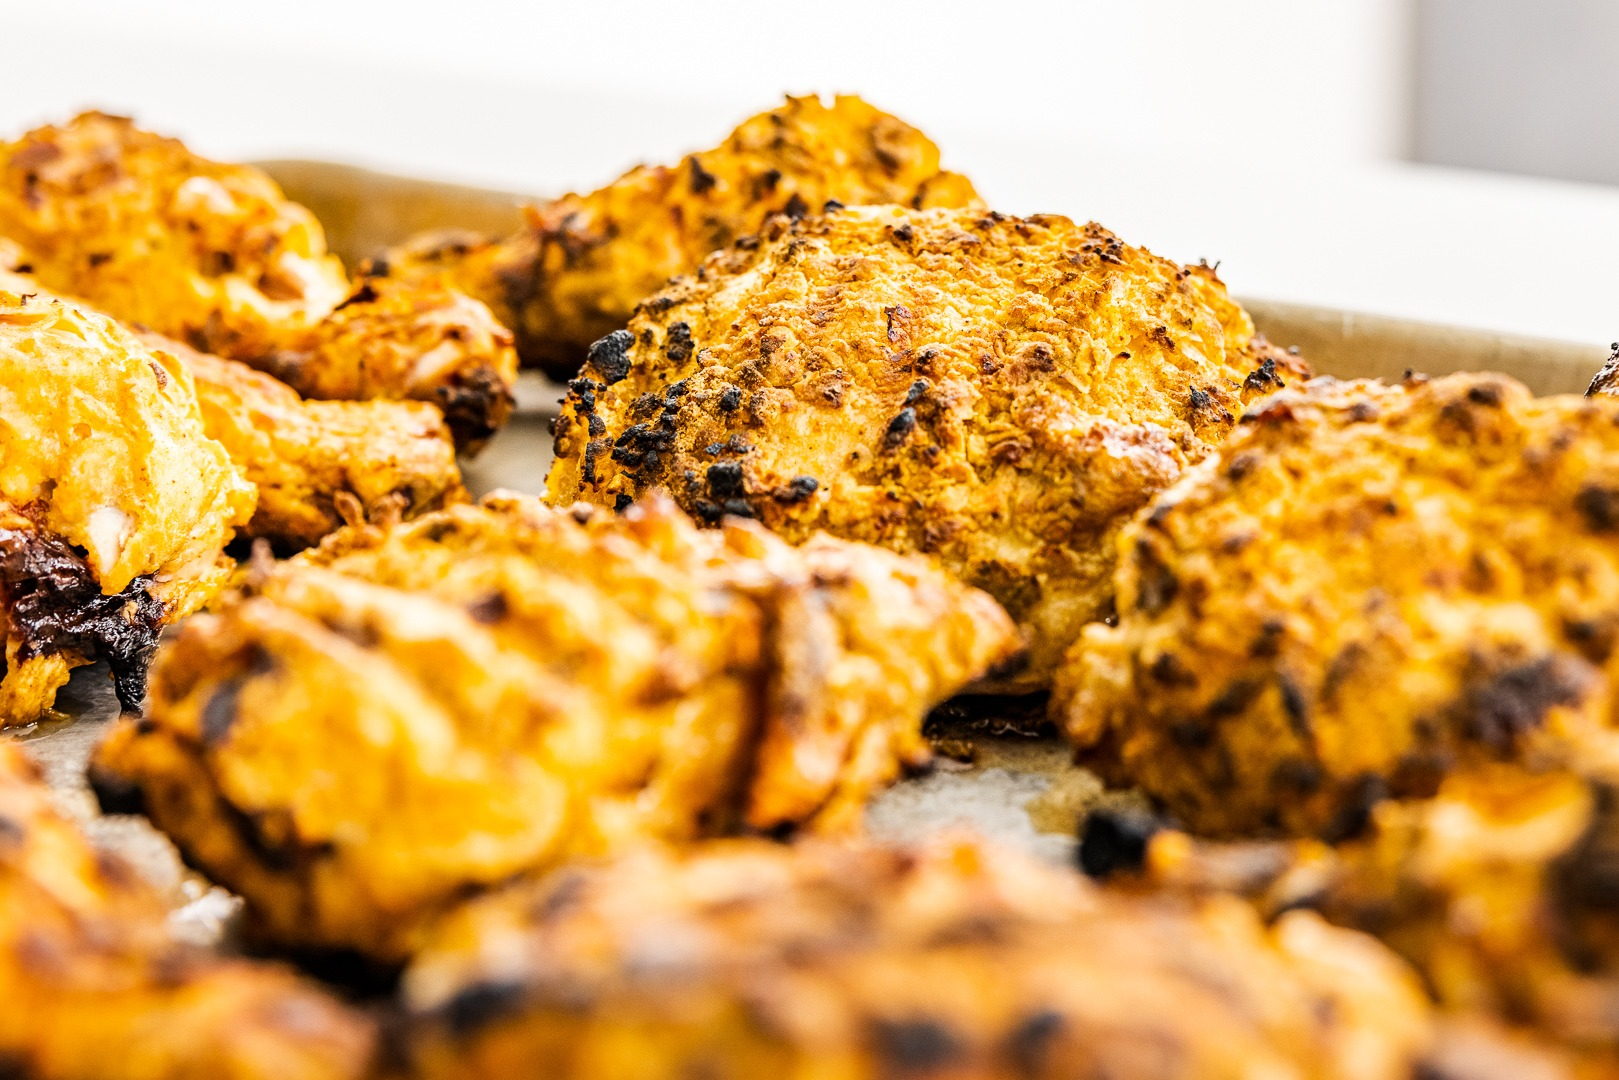 Grilled air-fried chicken